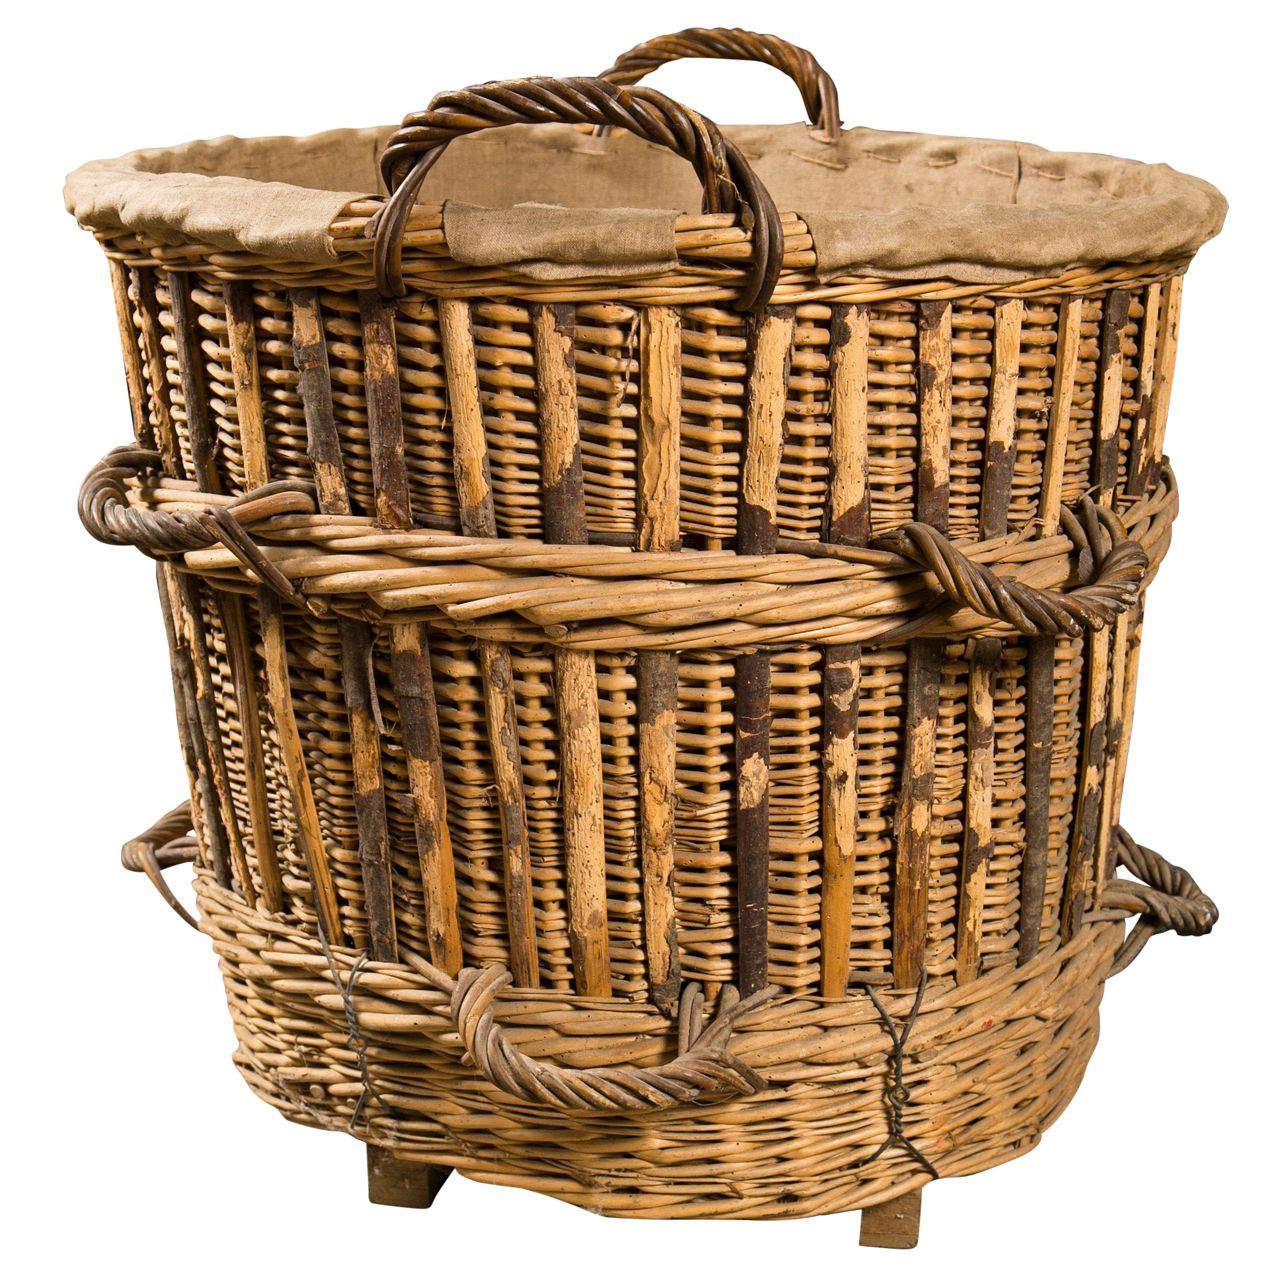 french th c champagne basket  dressing antiques and furniture - french th c champagne basket  from a unique collection of antique and modernbaskets